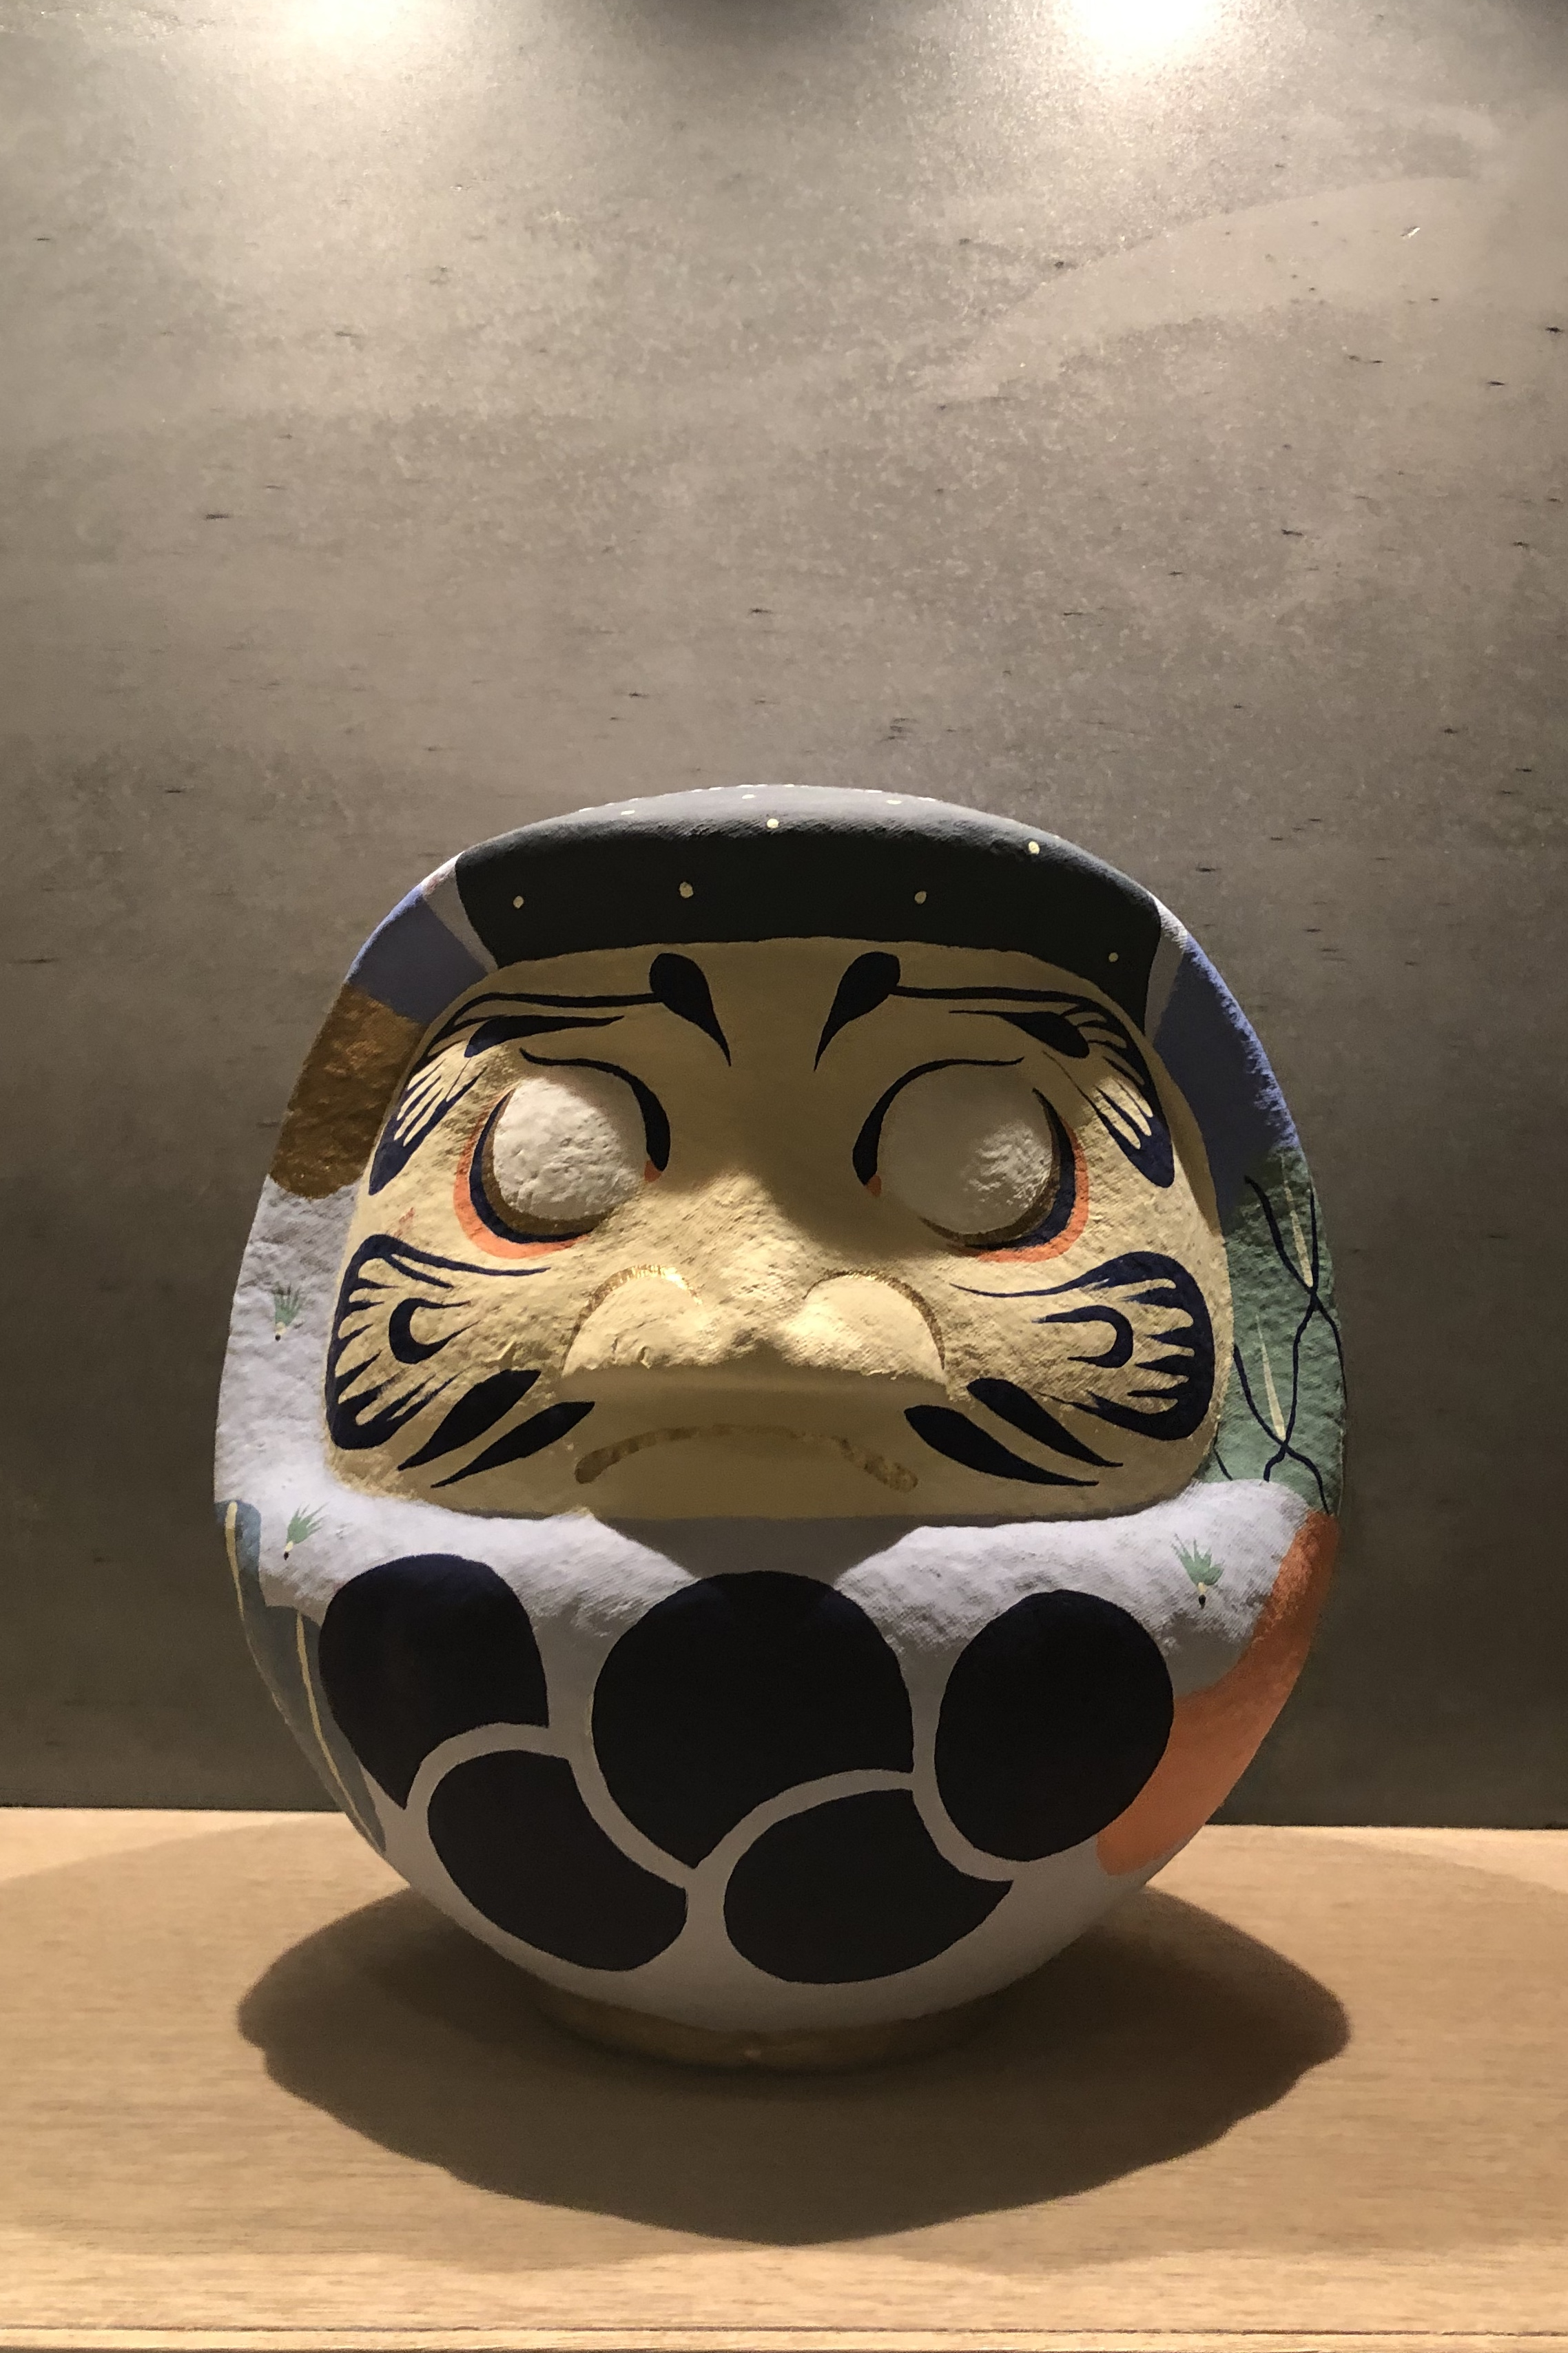 Daruma Doll Believed To Grant Wishes in Japanese Culture